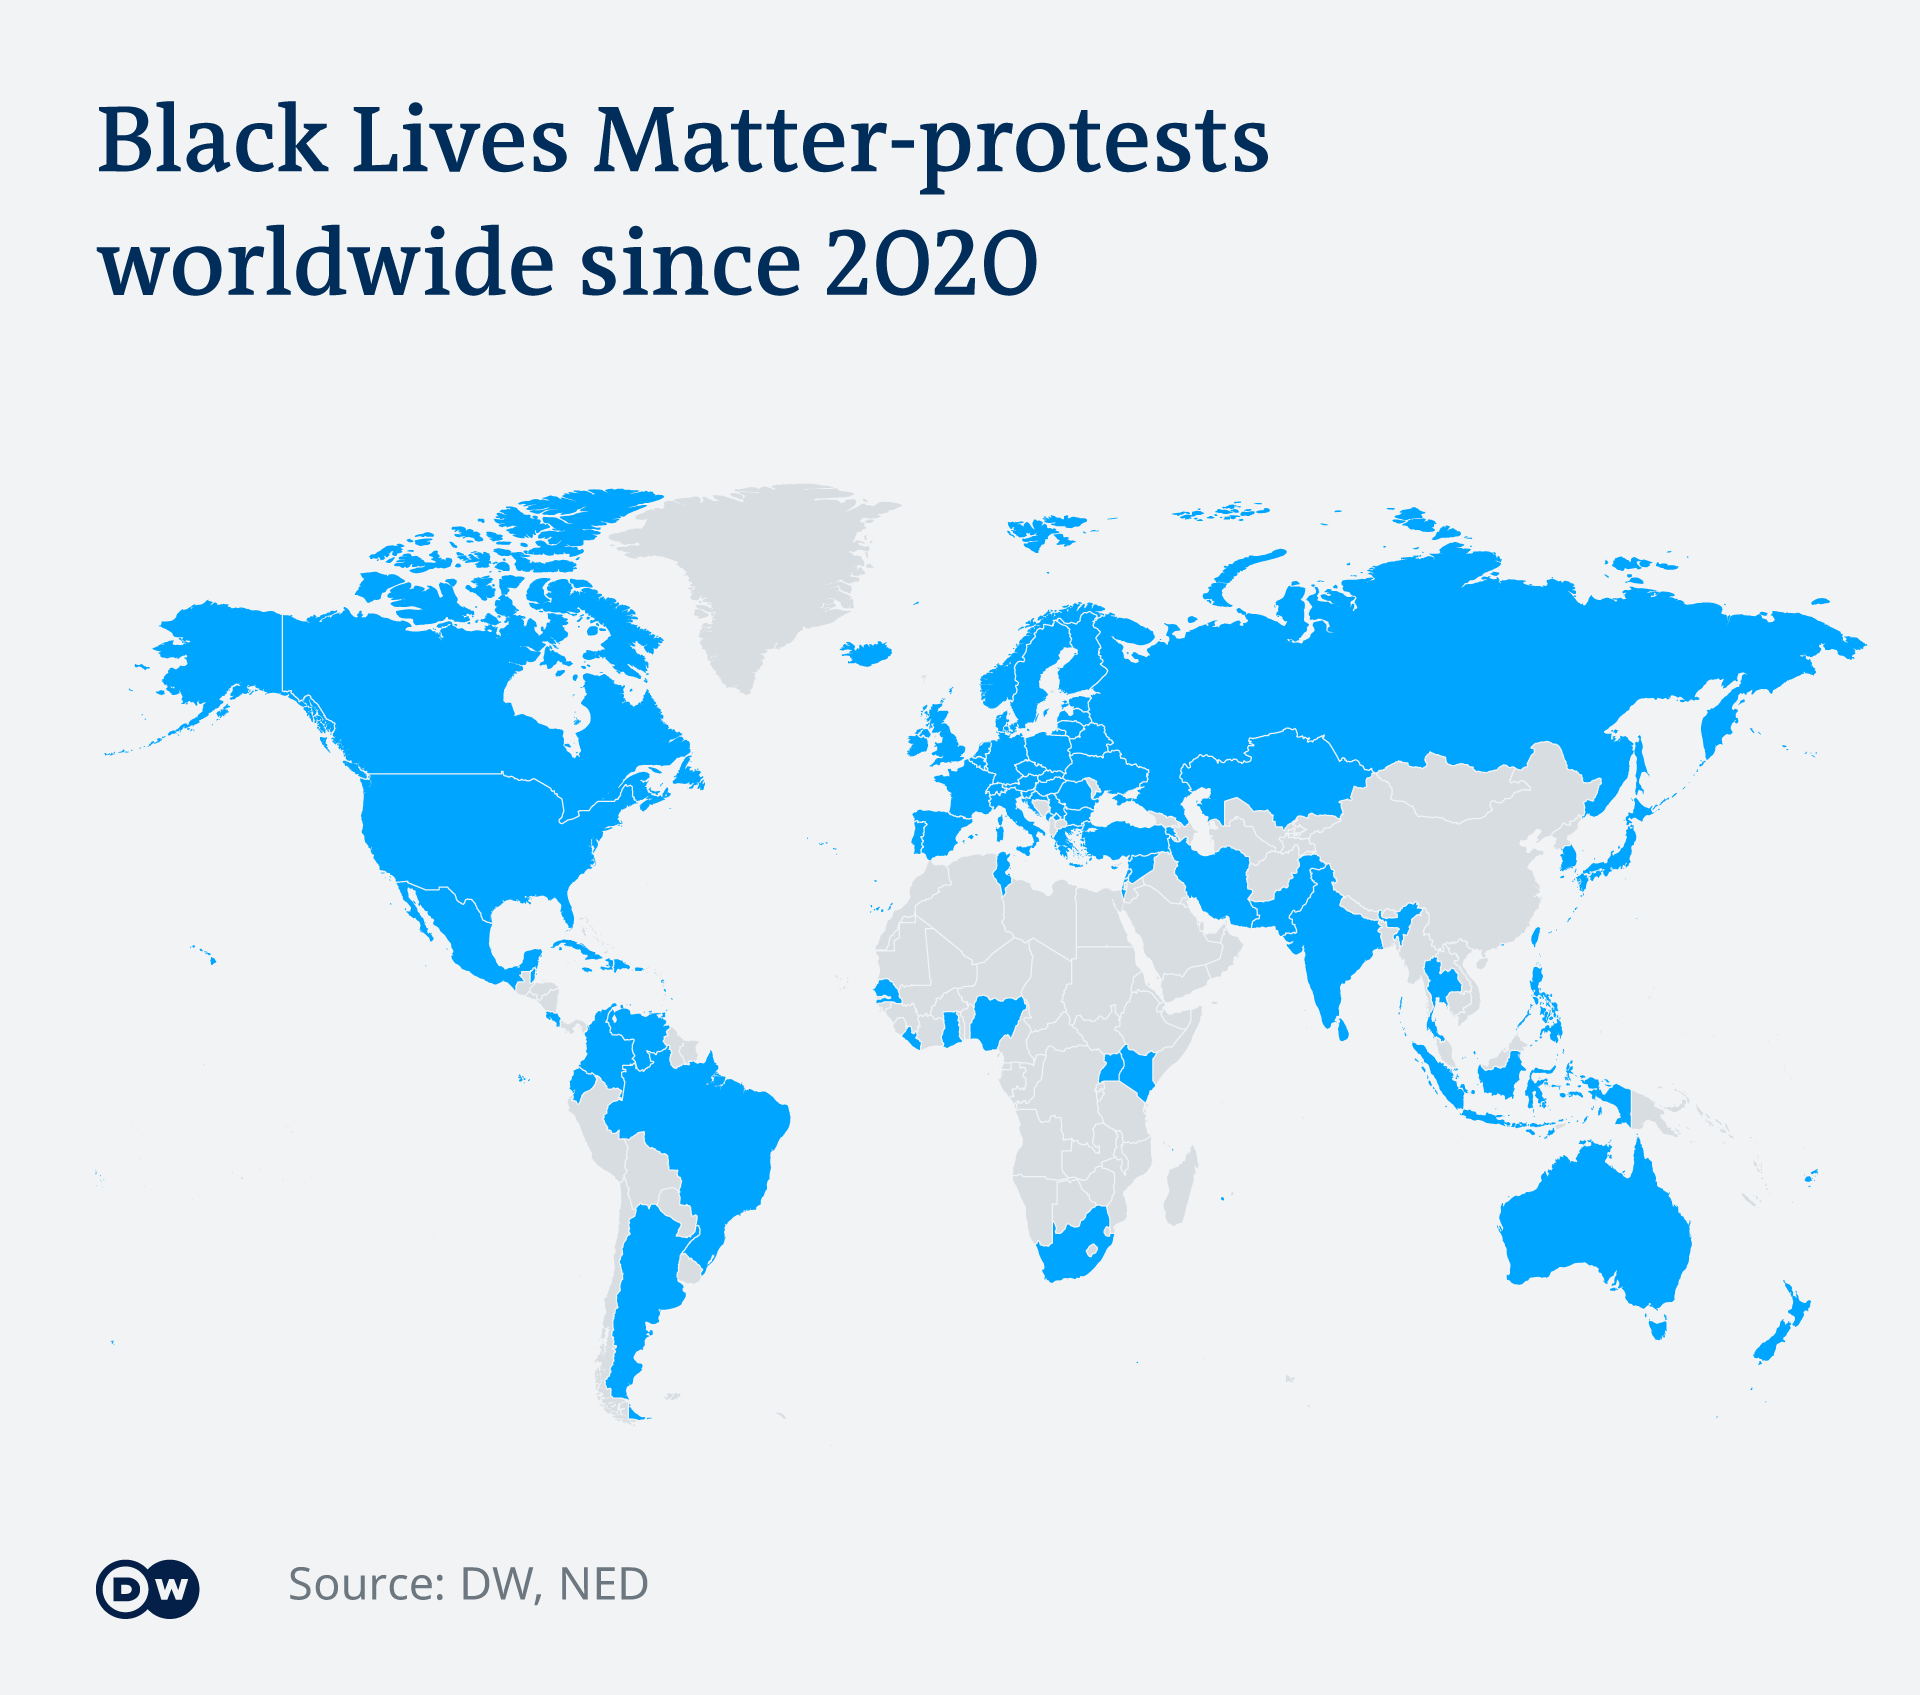 A graphic showing a world map highlighting countries where BLM protests took place in 2020